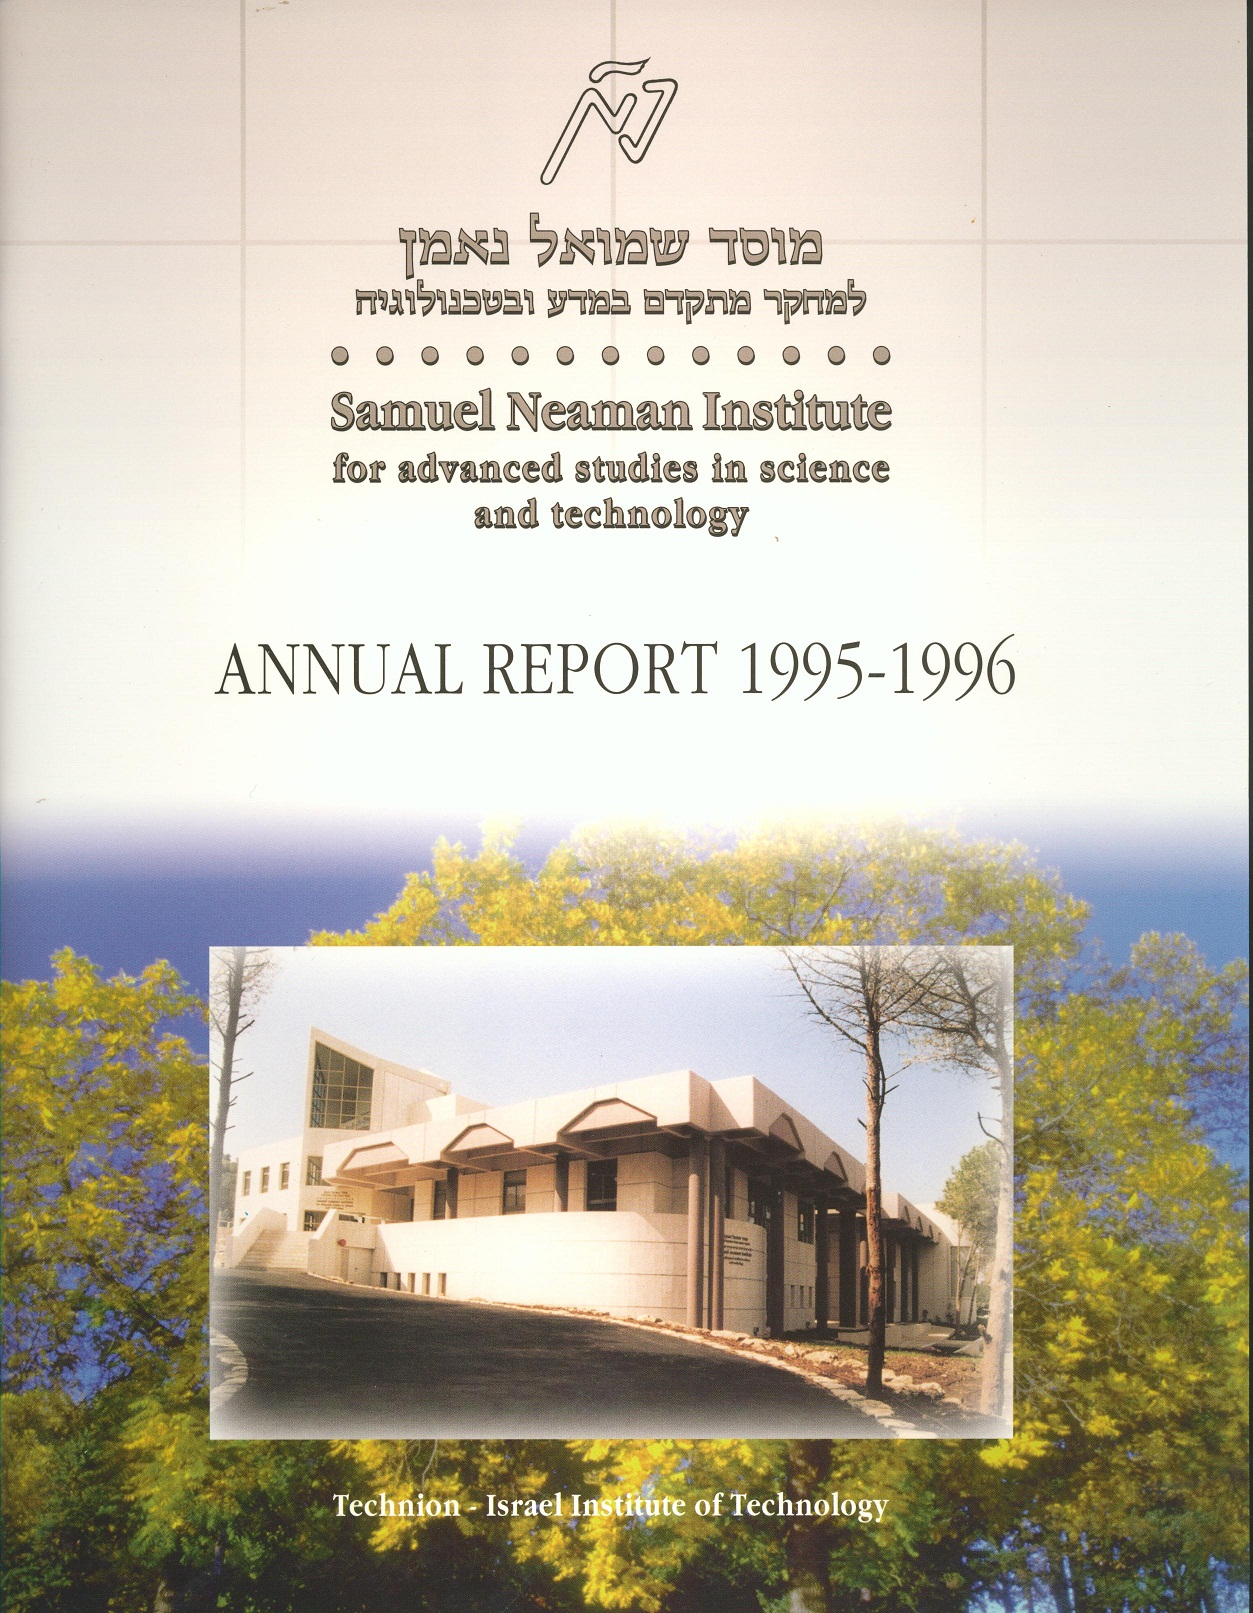 Annual Report 1995-1996 Samuel Neaman Institute